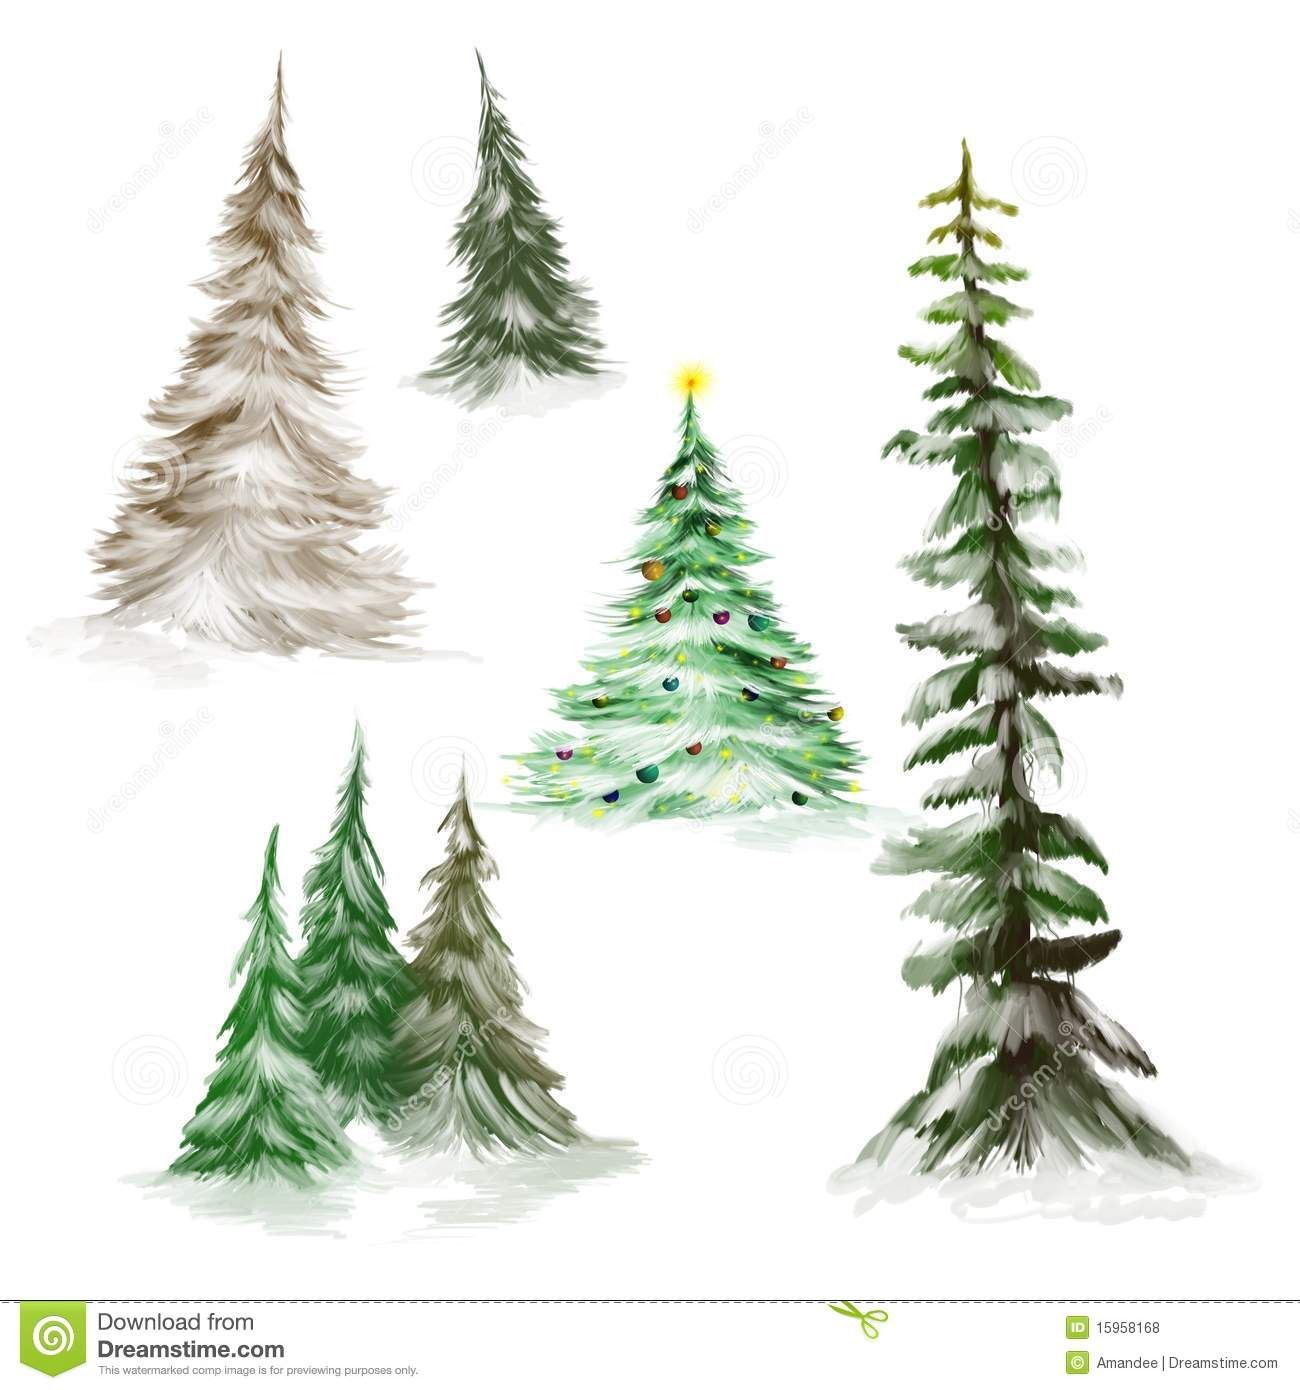 Uncategorized Pine Tree Sketch pine tree architectural sketch google search entourage trees search